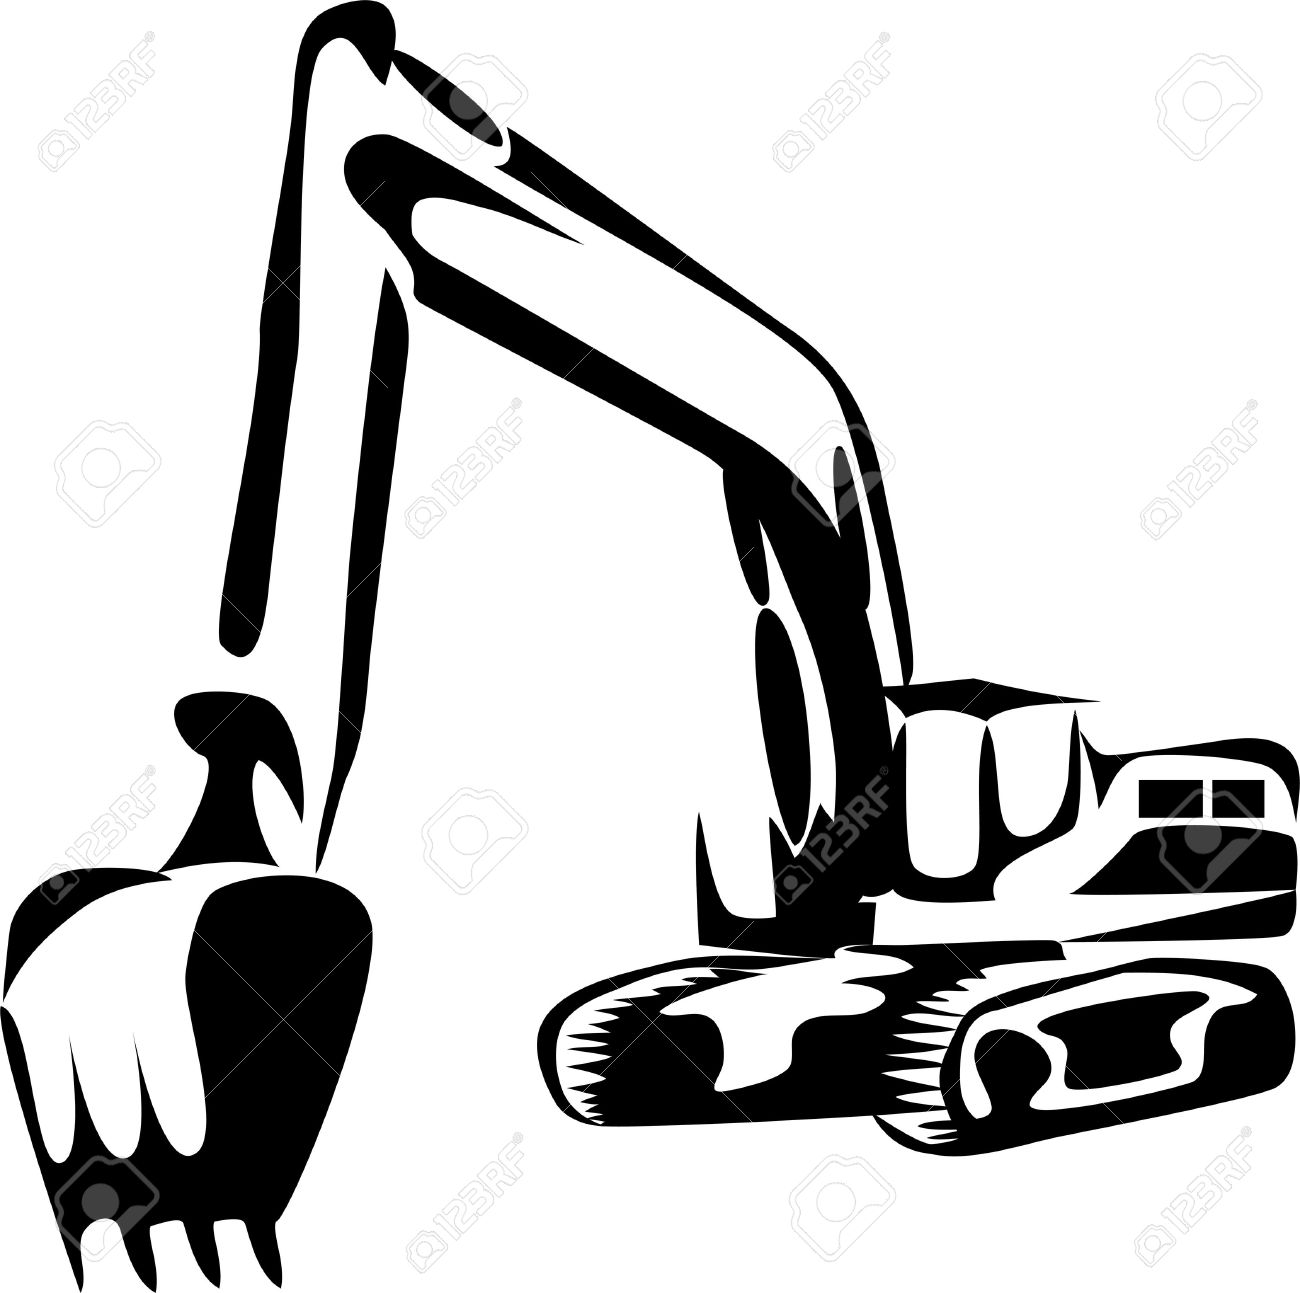 Trackhoe clipart 5 » Clipart Station.